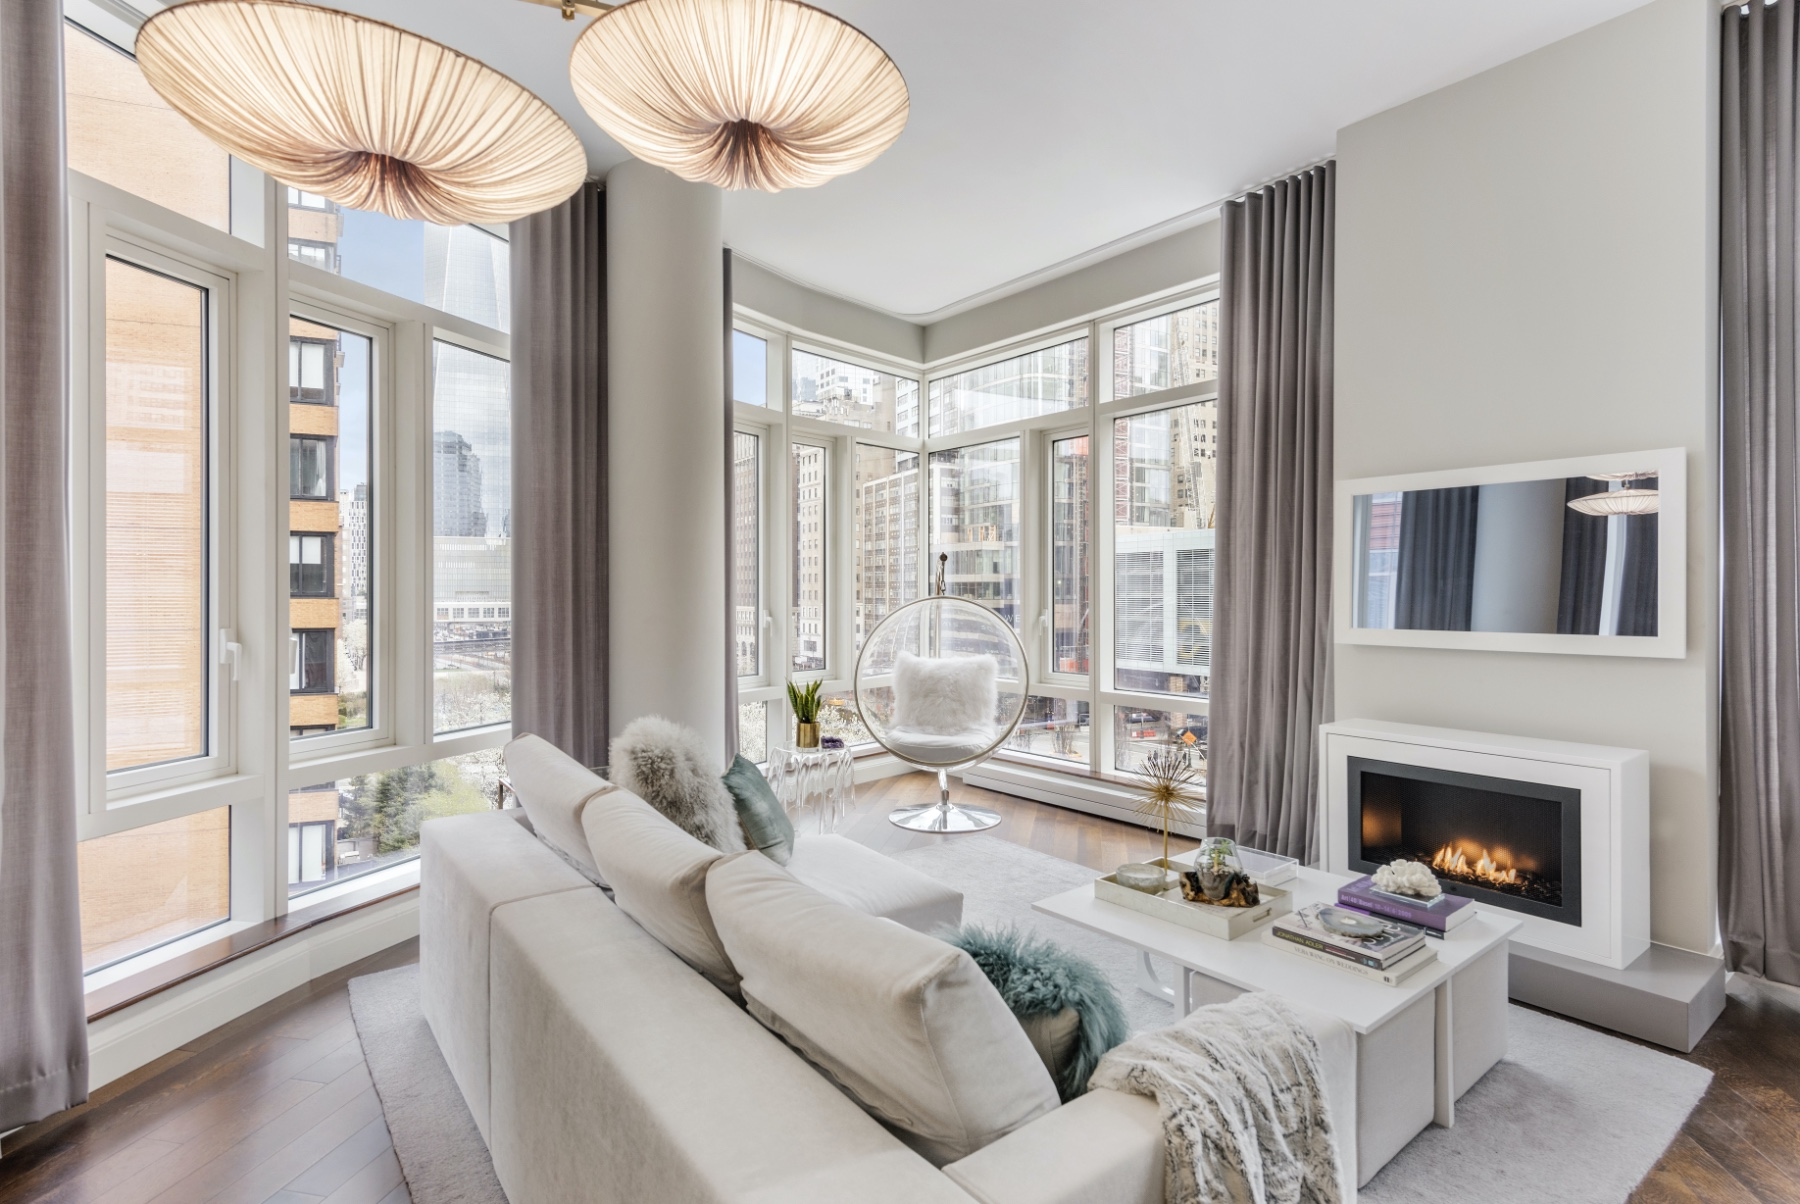 Looking for LUXURY? Own your own piece of Heaven in the heart of Battery Park City designed especially for the most privy by renowned interior designer Lo Chen. For the exclusive buyer, this stunner comes fully furnished... Lucky youUpon entering your fully-furnished sunlit corner home, youll immediately be wowed by the soaring 11-foot floor to ceiling windows which provide a full view of the Freedom Tower and beautiful treelined streets below. Whether reading a book in your nook, enjoying the fire, or entertaining guests, the living room is ready to impress!The open concept chefs kitchen is equipped with eco black Riverstone countertops, sub-zero Wolfe and Miele appliances, and bamboo cabinets. Perfect for your inner chef, or any in-home catered event. After a long day at the office, head into the limestone and glass mosaic tile bathroom for a soak in the extra deep Waterworks tub before making your way into your glorious bedroom to relax and sleep the night away!Staying true to the luxurious feel this condo has to offer, the furniture in the unit is no different: Milano Smart living sofa and coffee table imported from ItalyFreely moving mobile lighting by Aqua Creations imported from Tel AvivThe dining table is the famous Saarinen Marble Table by KnollArt installation by Jeffrey GoodmanPaintings by LumasSmall custom shelf vases by Na SuenThe drapery and custom automated shades are by The Shade Store and the TV is a hidden mirror TV with custom frame The custom fireplace is by Hearth cabinets and there are many more custom and hand-picked items throughoutDesigned by world renowned architect, Pelli Clarke Pelli, The Visionaire is Manhattan's first green LEED Platinum certified residential property with purified filtered air, solar panels, and a full suite of white-glove amenities, including:24-hour doorman and concierge service24/7 valet parking garage and bike storageA state-of-the-art fitness center that offers classesYoga studioSunlit saltwater swimming poolJacuz